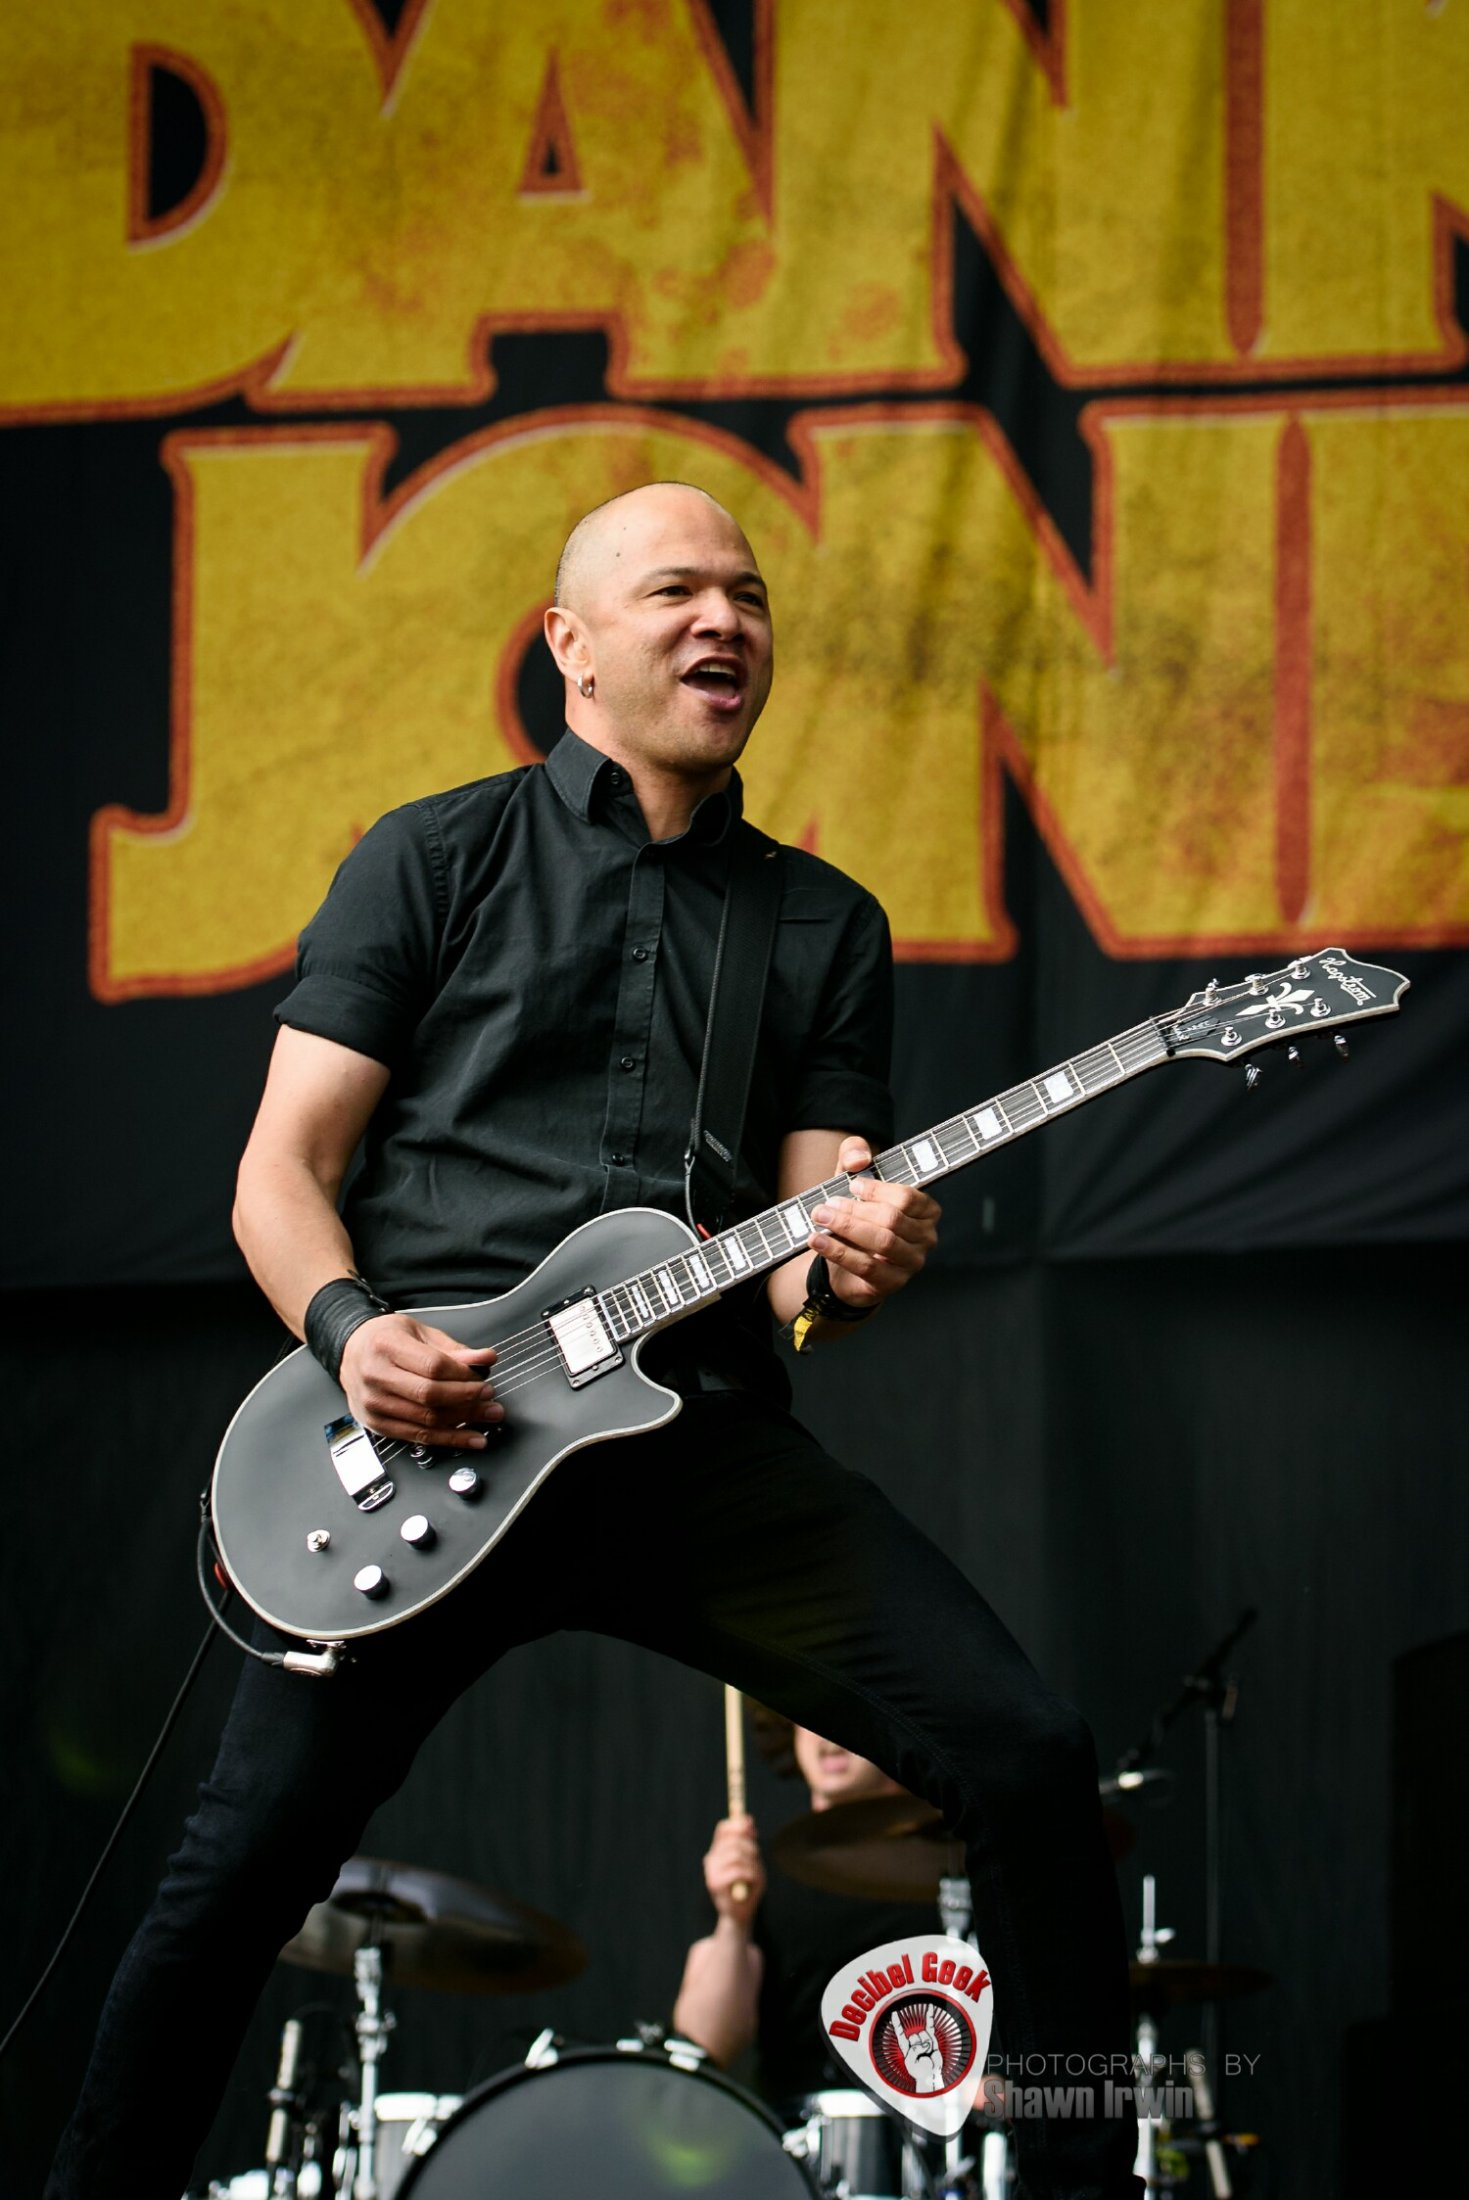 Danko Jones #1-Sweden Rock 2019-Shawn Irwin